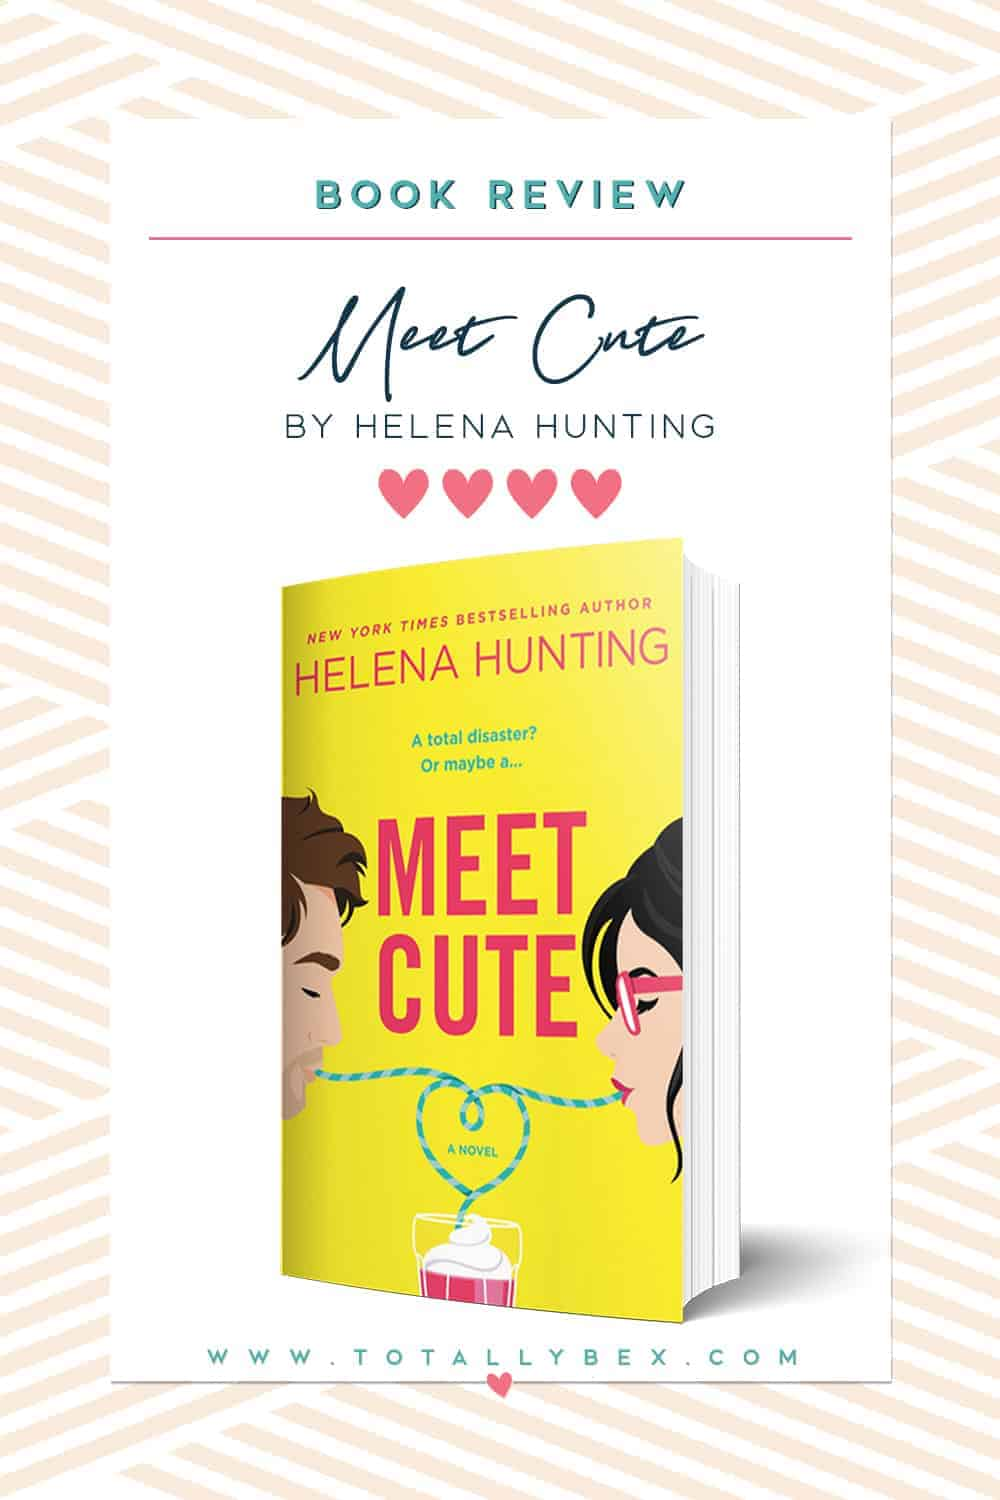 Meet Cute by Helena Hunting - Book Review